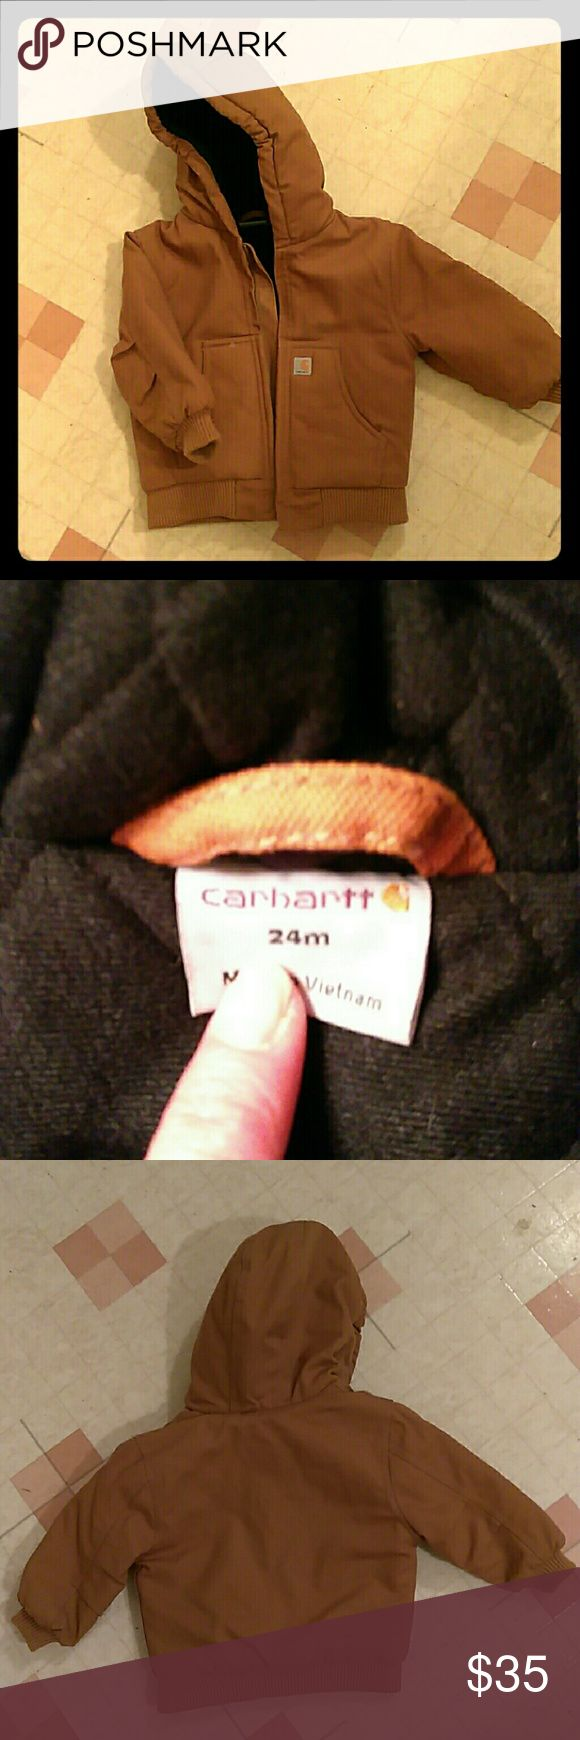 Toddler boys size 24 months Never worn! It's a classic in perfect condition Carhartt Jackets & Coats Utility Jackets